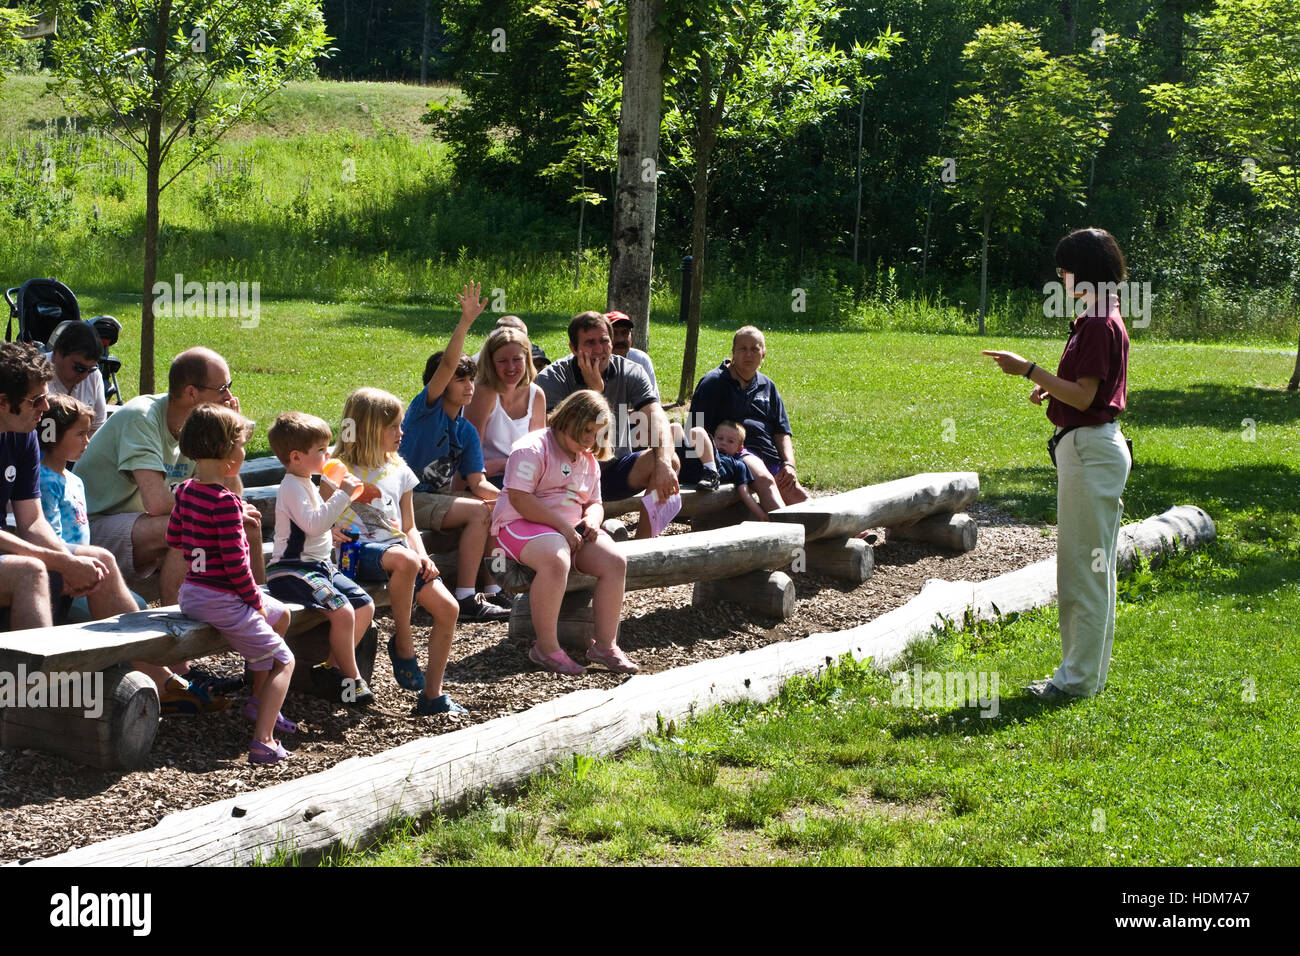 Vermont Institute of Natural Sciences, Quechee, Vermont, USA. Adults and children attending a demonstration at VINS - Stock Image